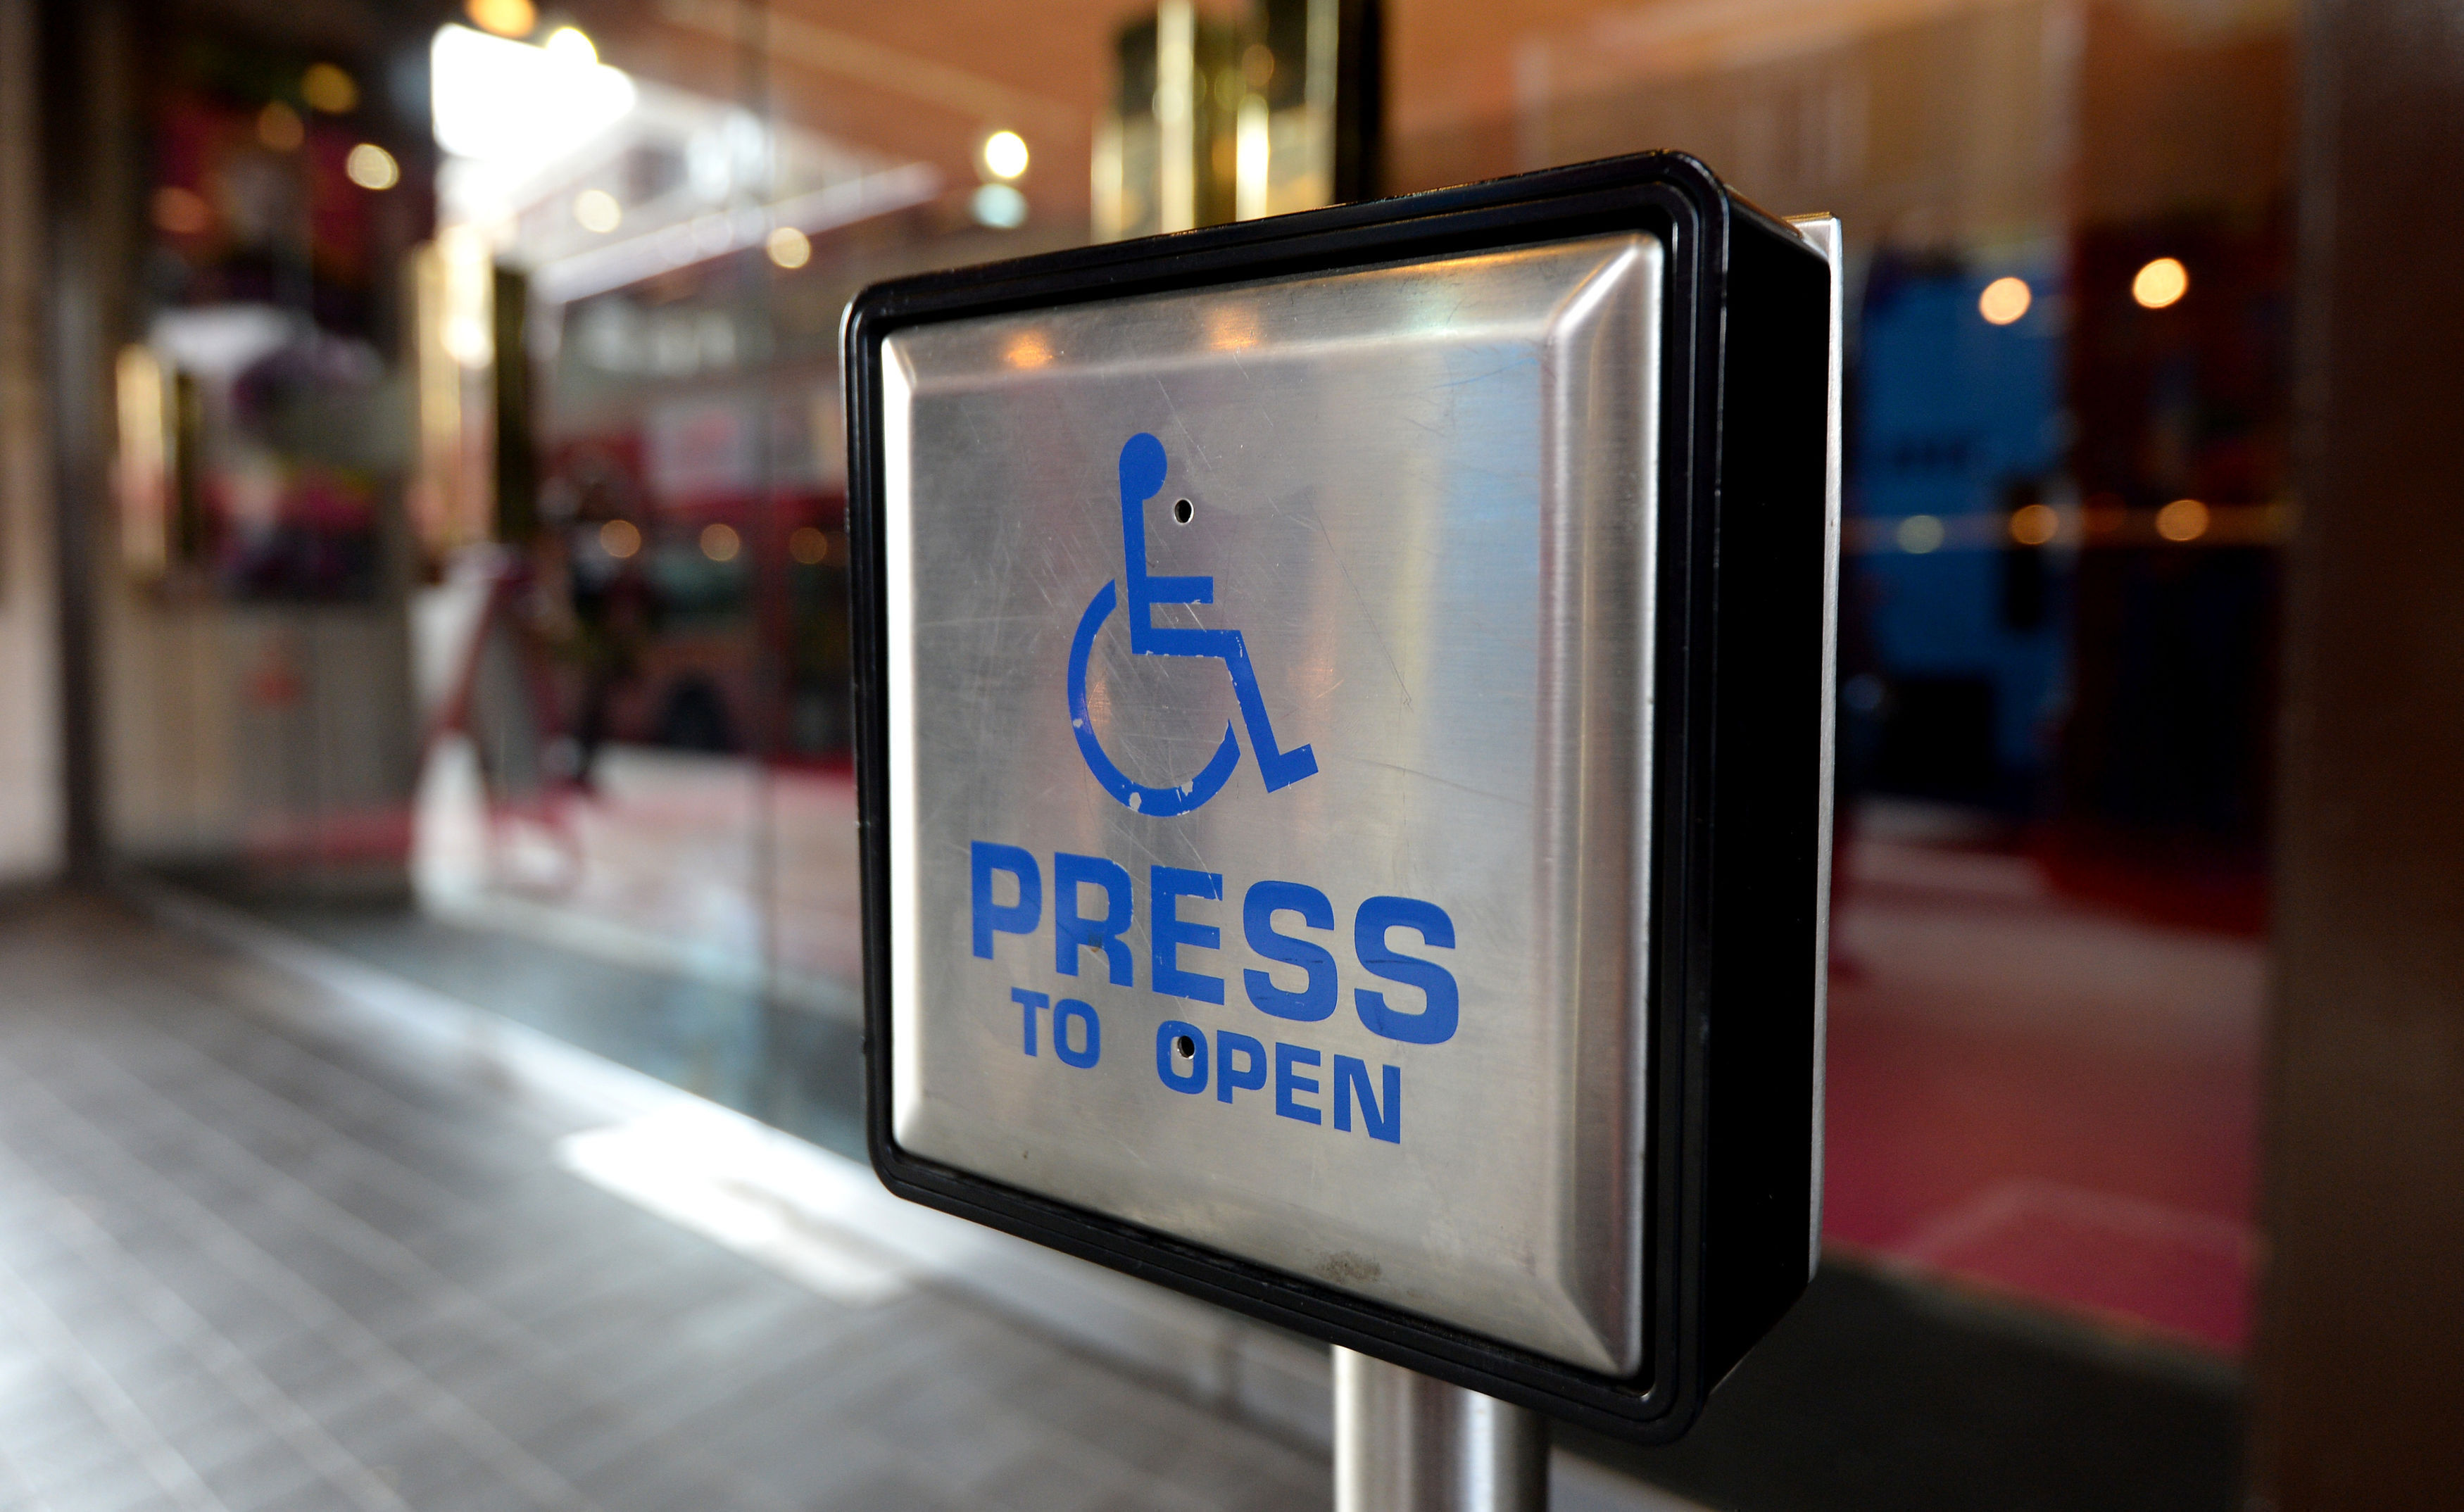 Why Are There So Many More Disabled >> Charity Says Too Many Employers Have Wrong Idea About Hiring